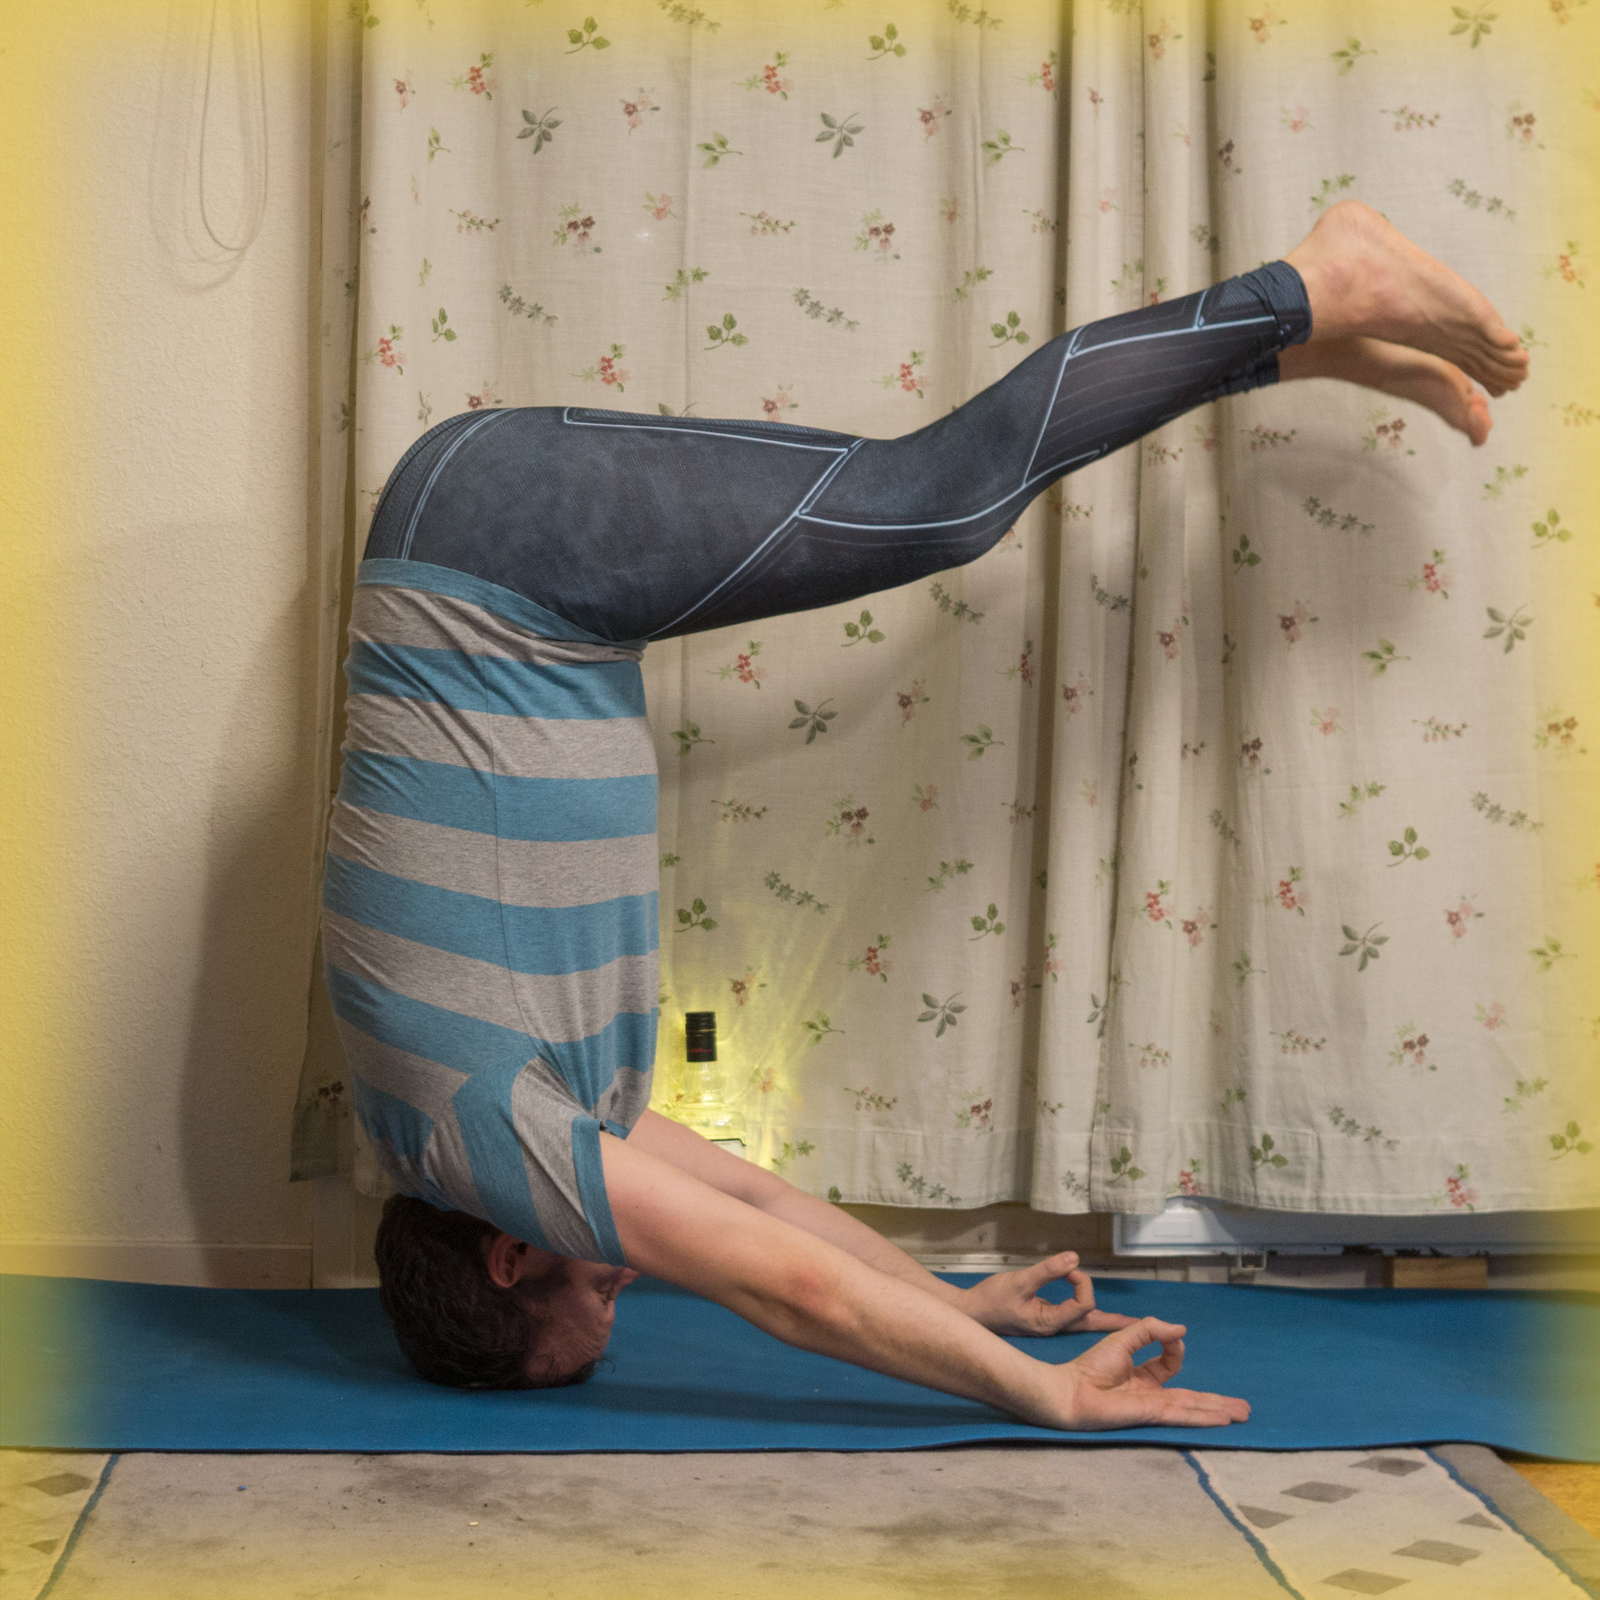 Mukta Hasta Sirsasana B in November 16th 2017. Today, I show my gratitude for knowledge. A equals A, vaccines work, we've been to the moon, global warming is real, chemtrails aren't real, univ